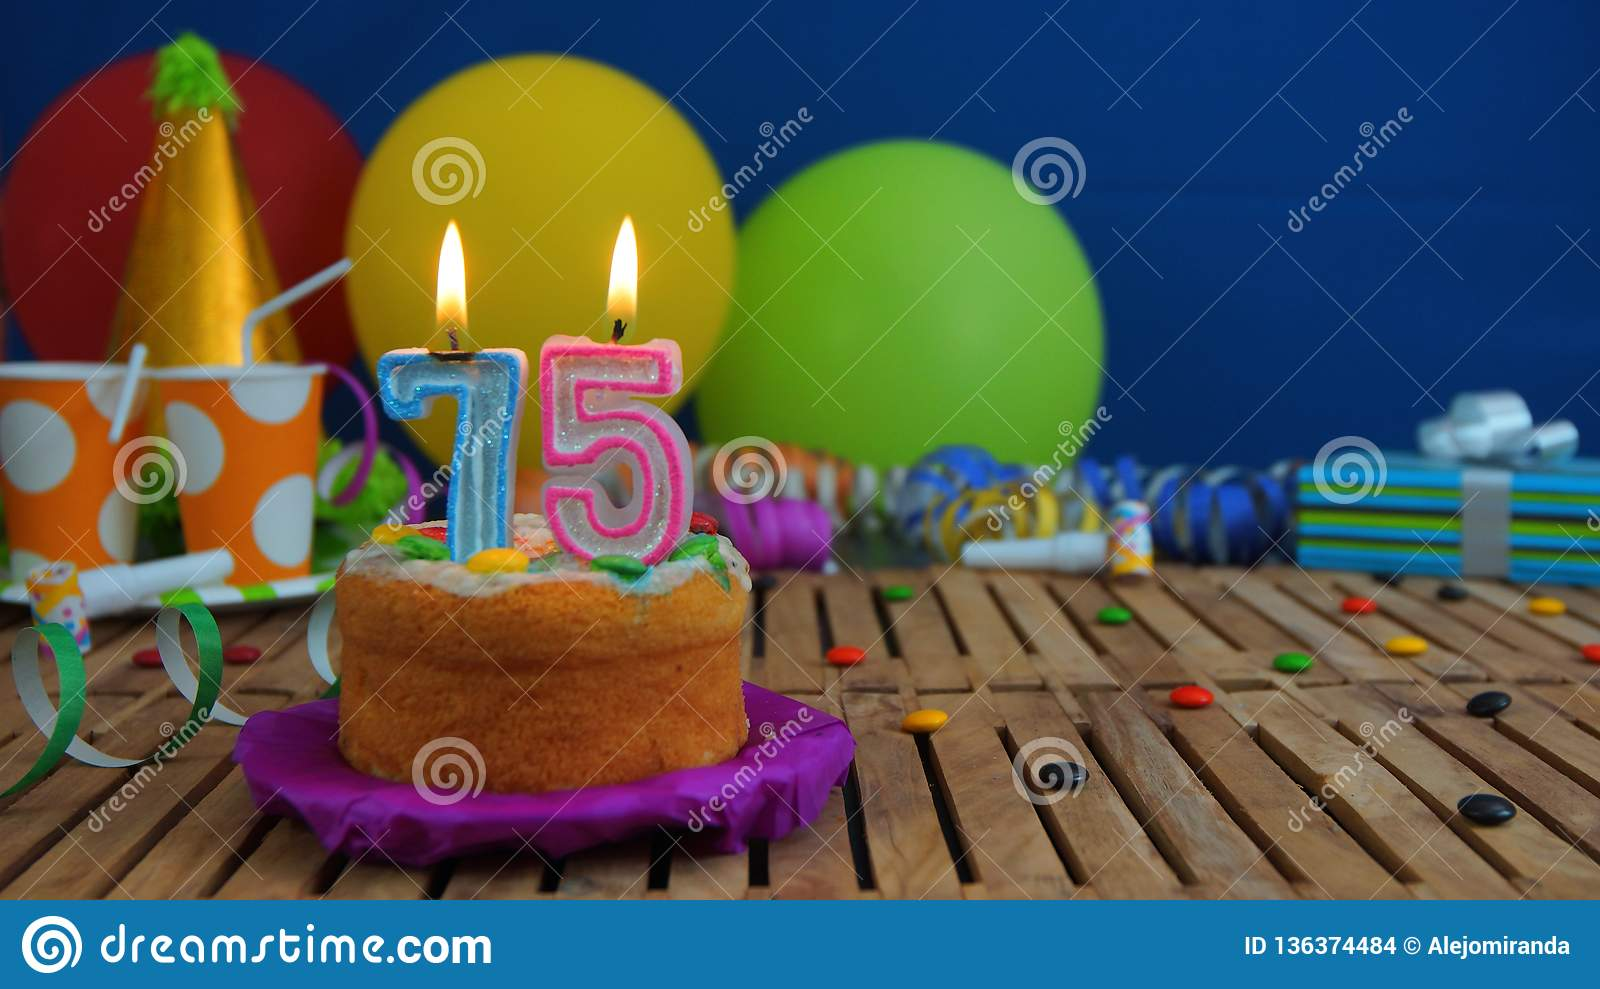 Birthday 75 Cake With Candles On Rustic Wooden Table Background Of Colorful Balloons Gifts